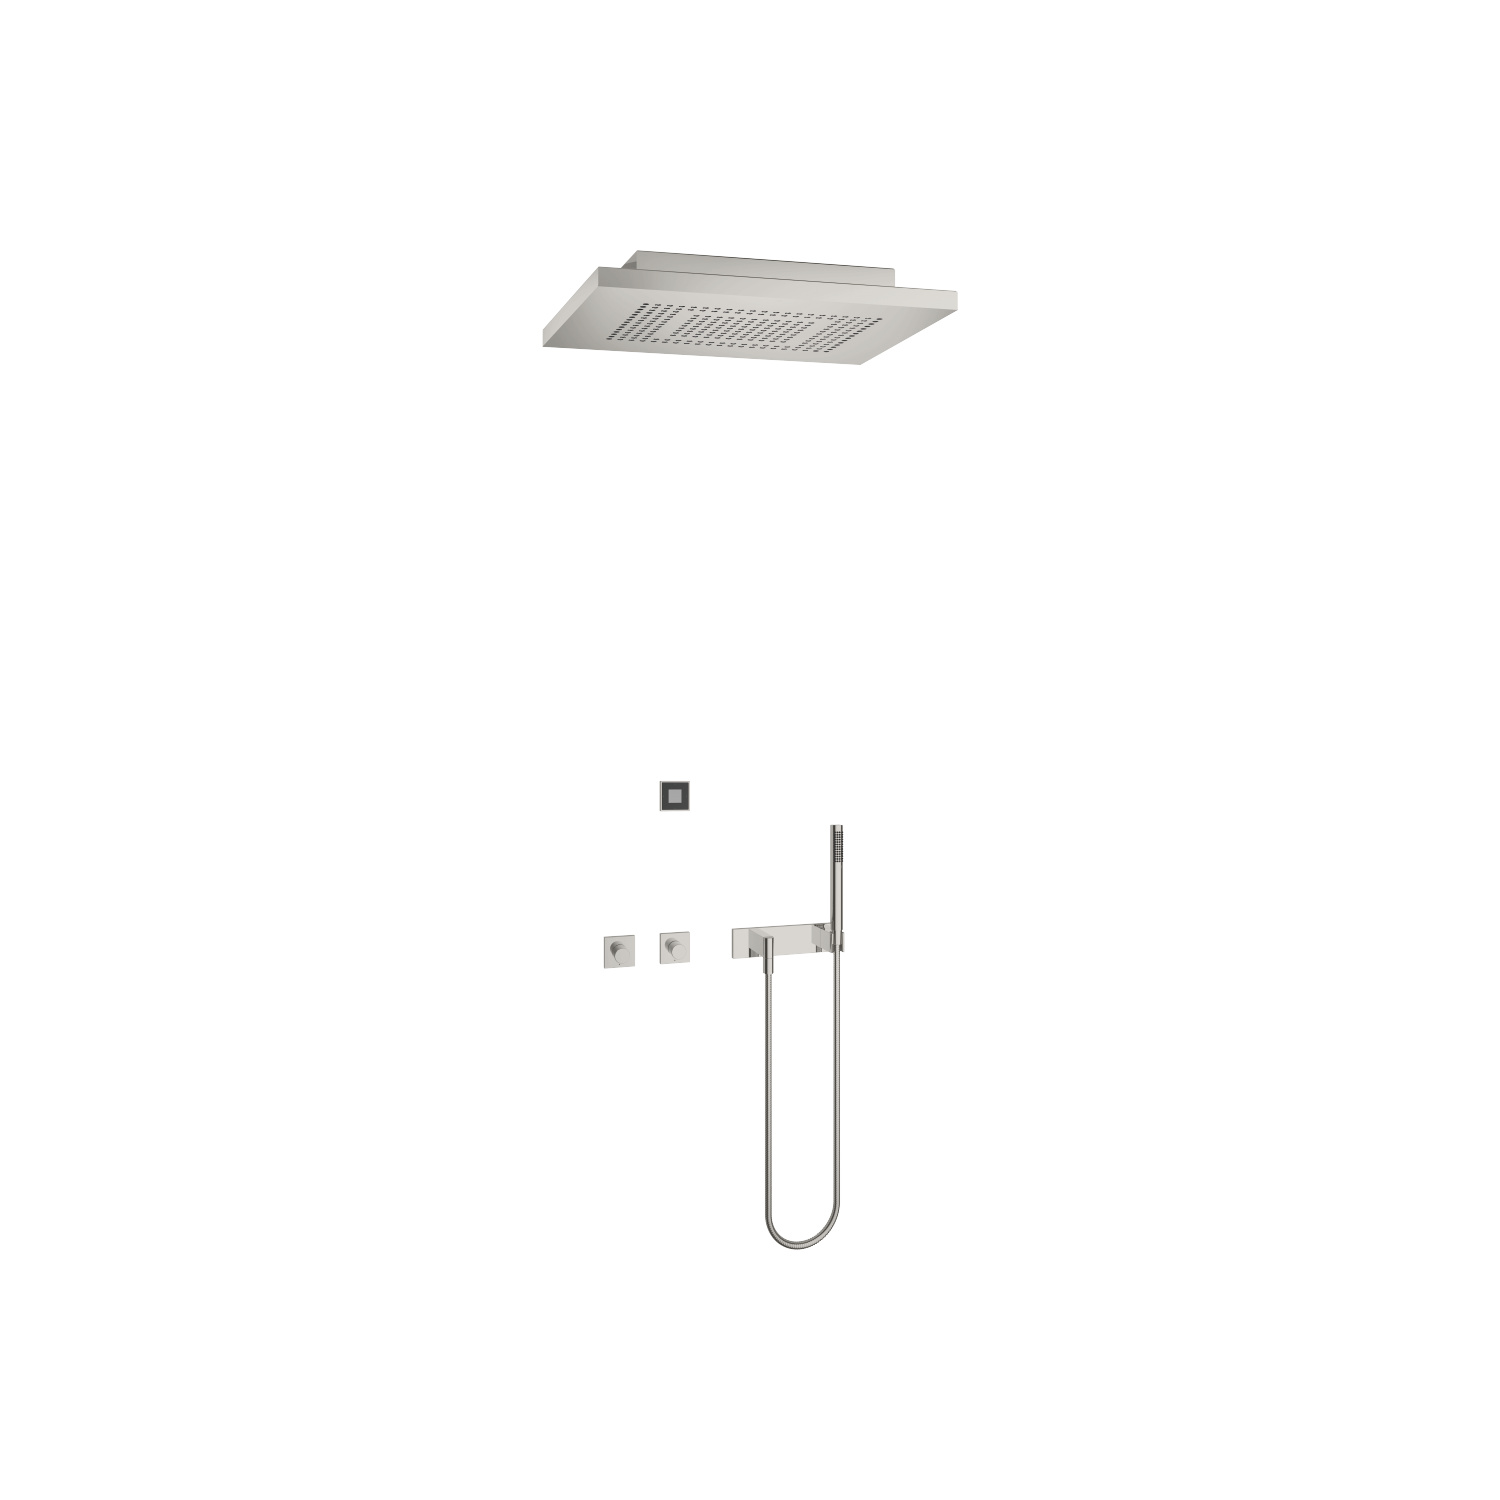 eUNIT SHOWERᴬᵀᵀ Smart Rain Shower - Brushed stainless steel / platinum matt - 41 382 979-89